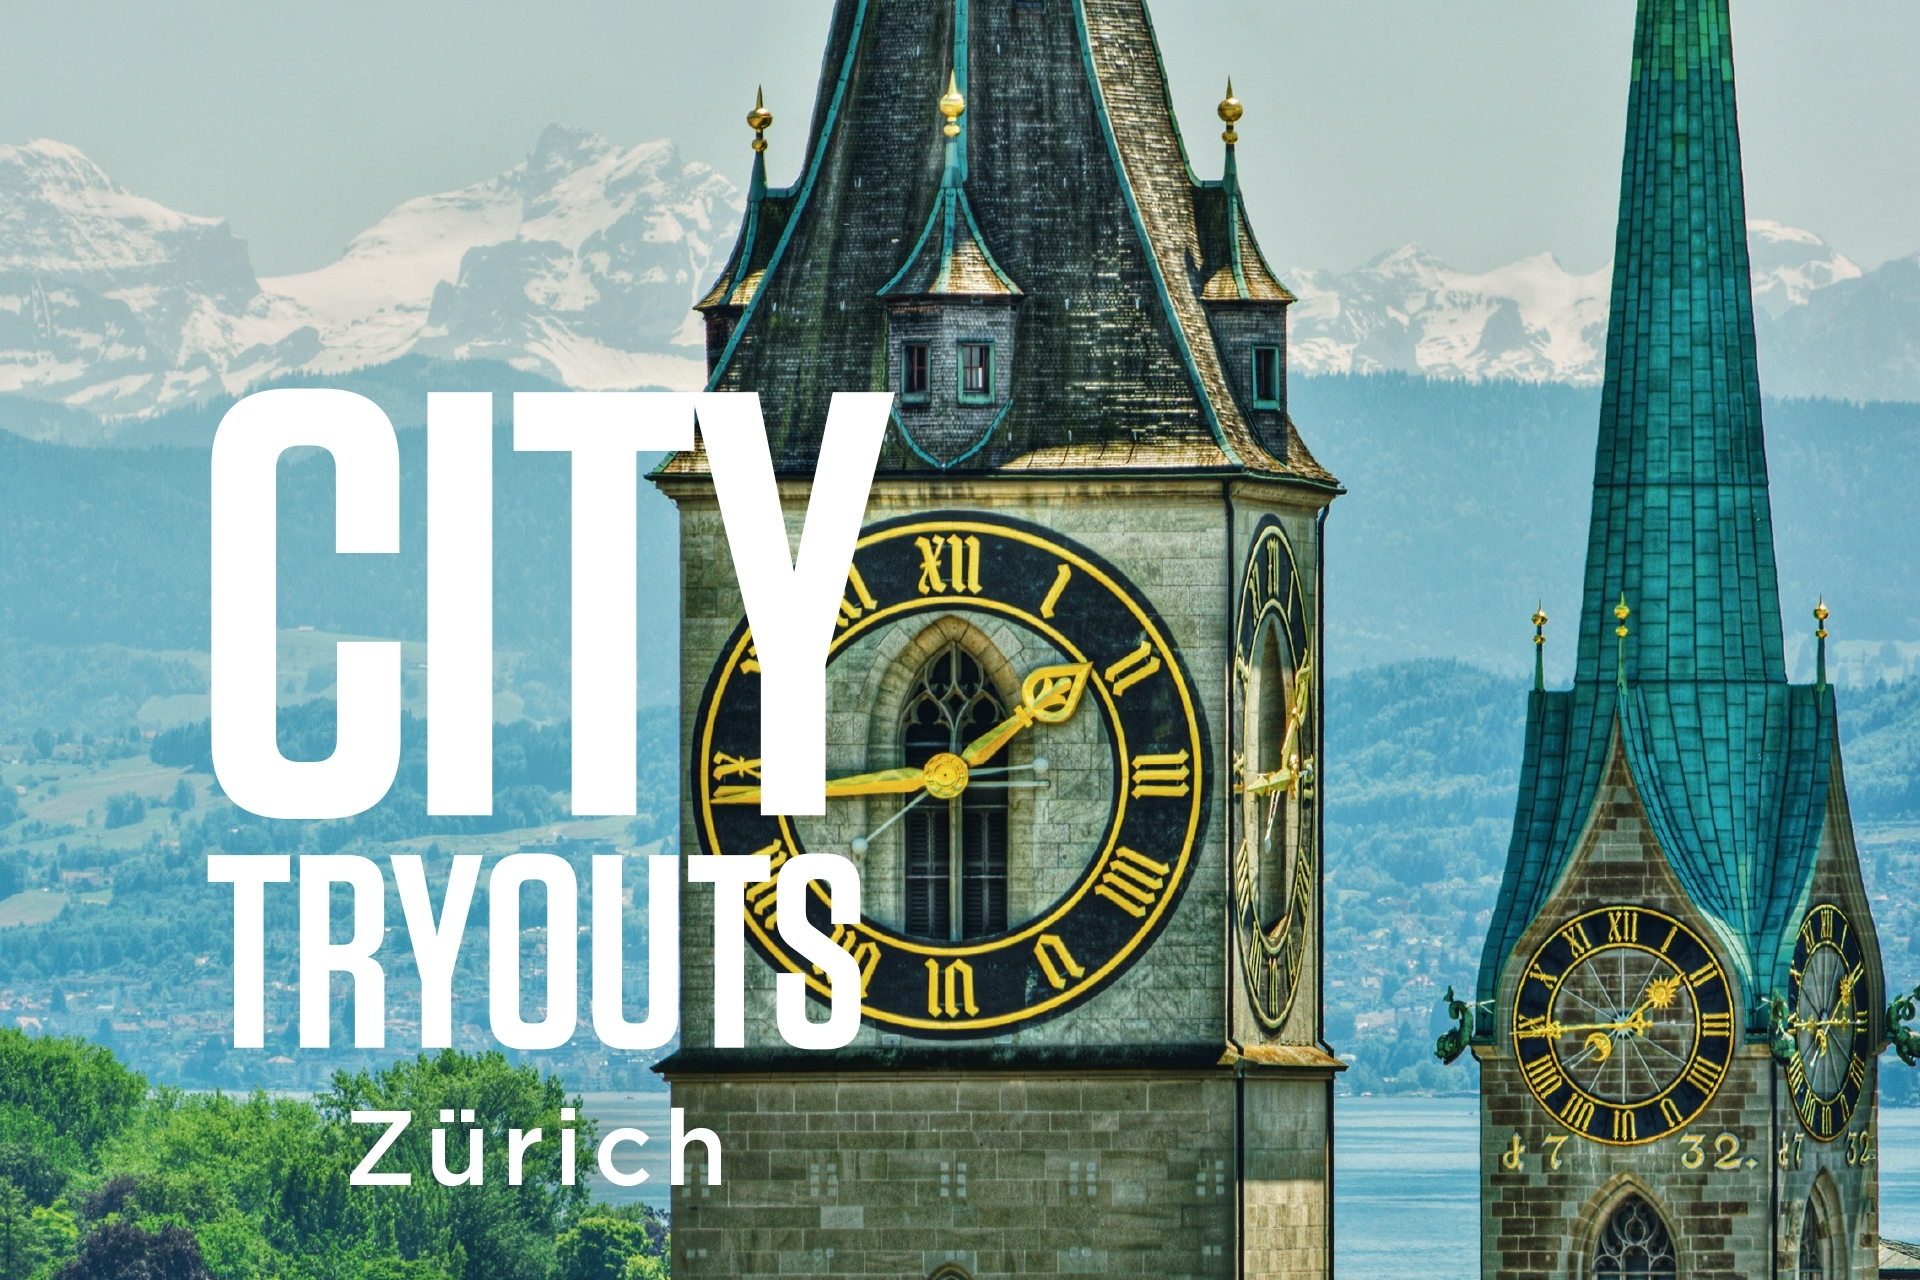 Canon City Tryouts in Zürich - Canon Academy Spezialthemen